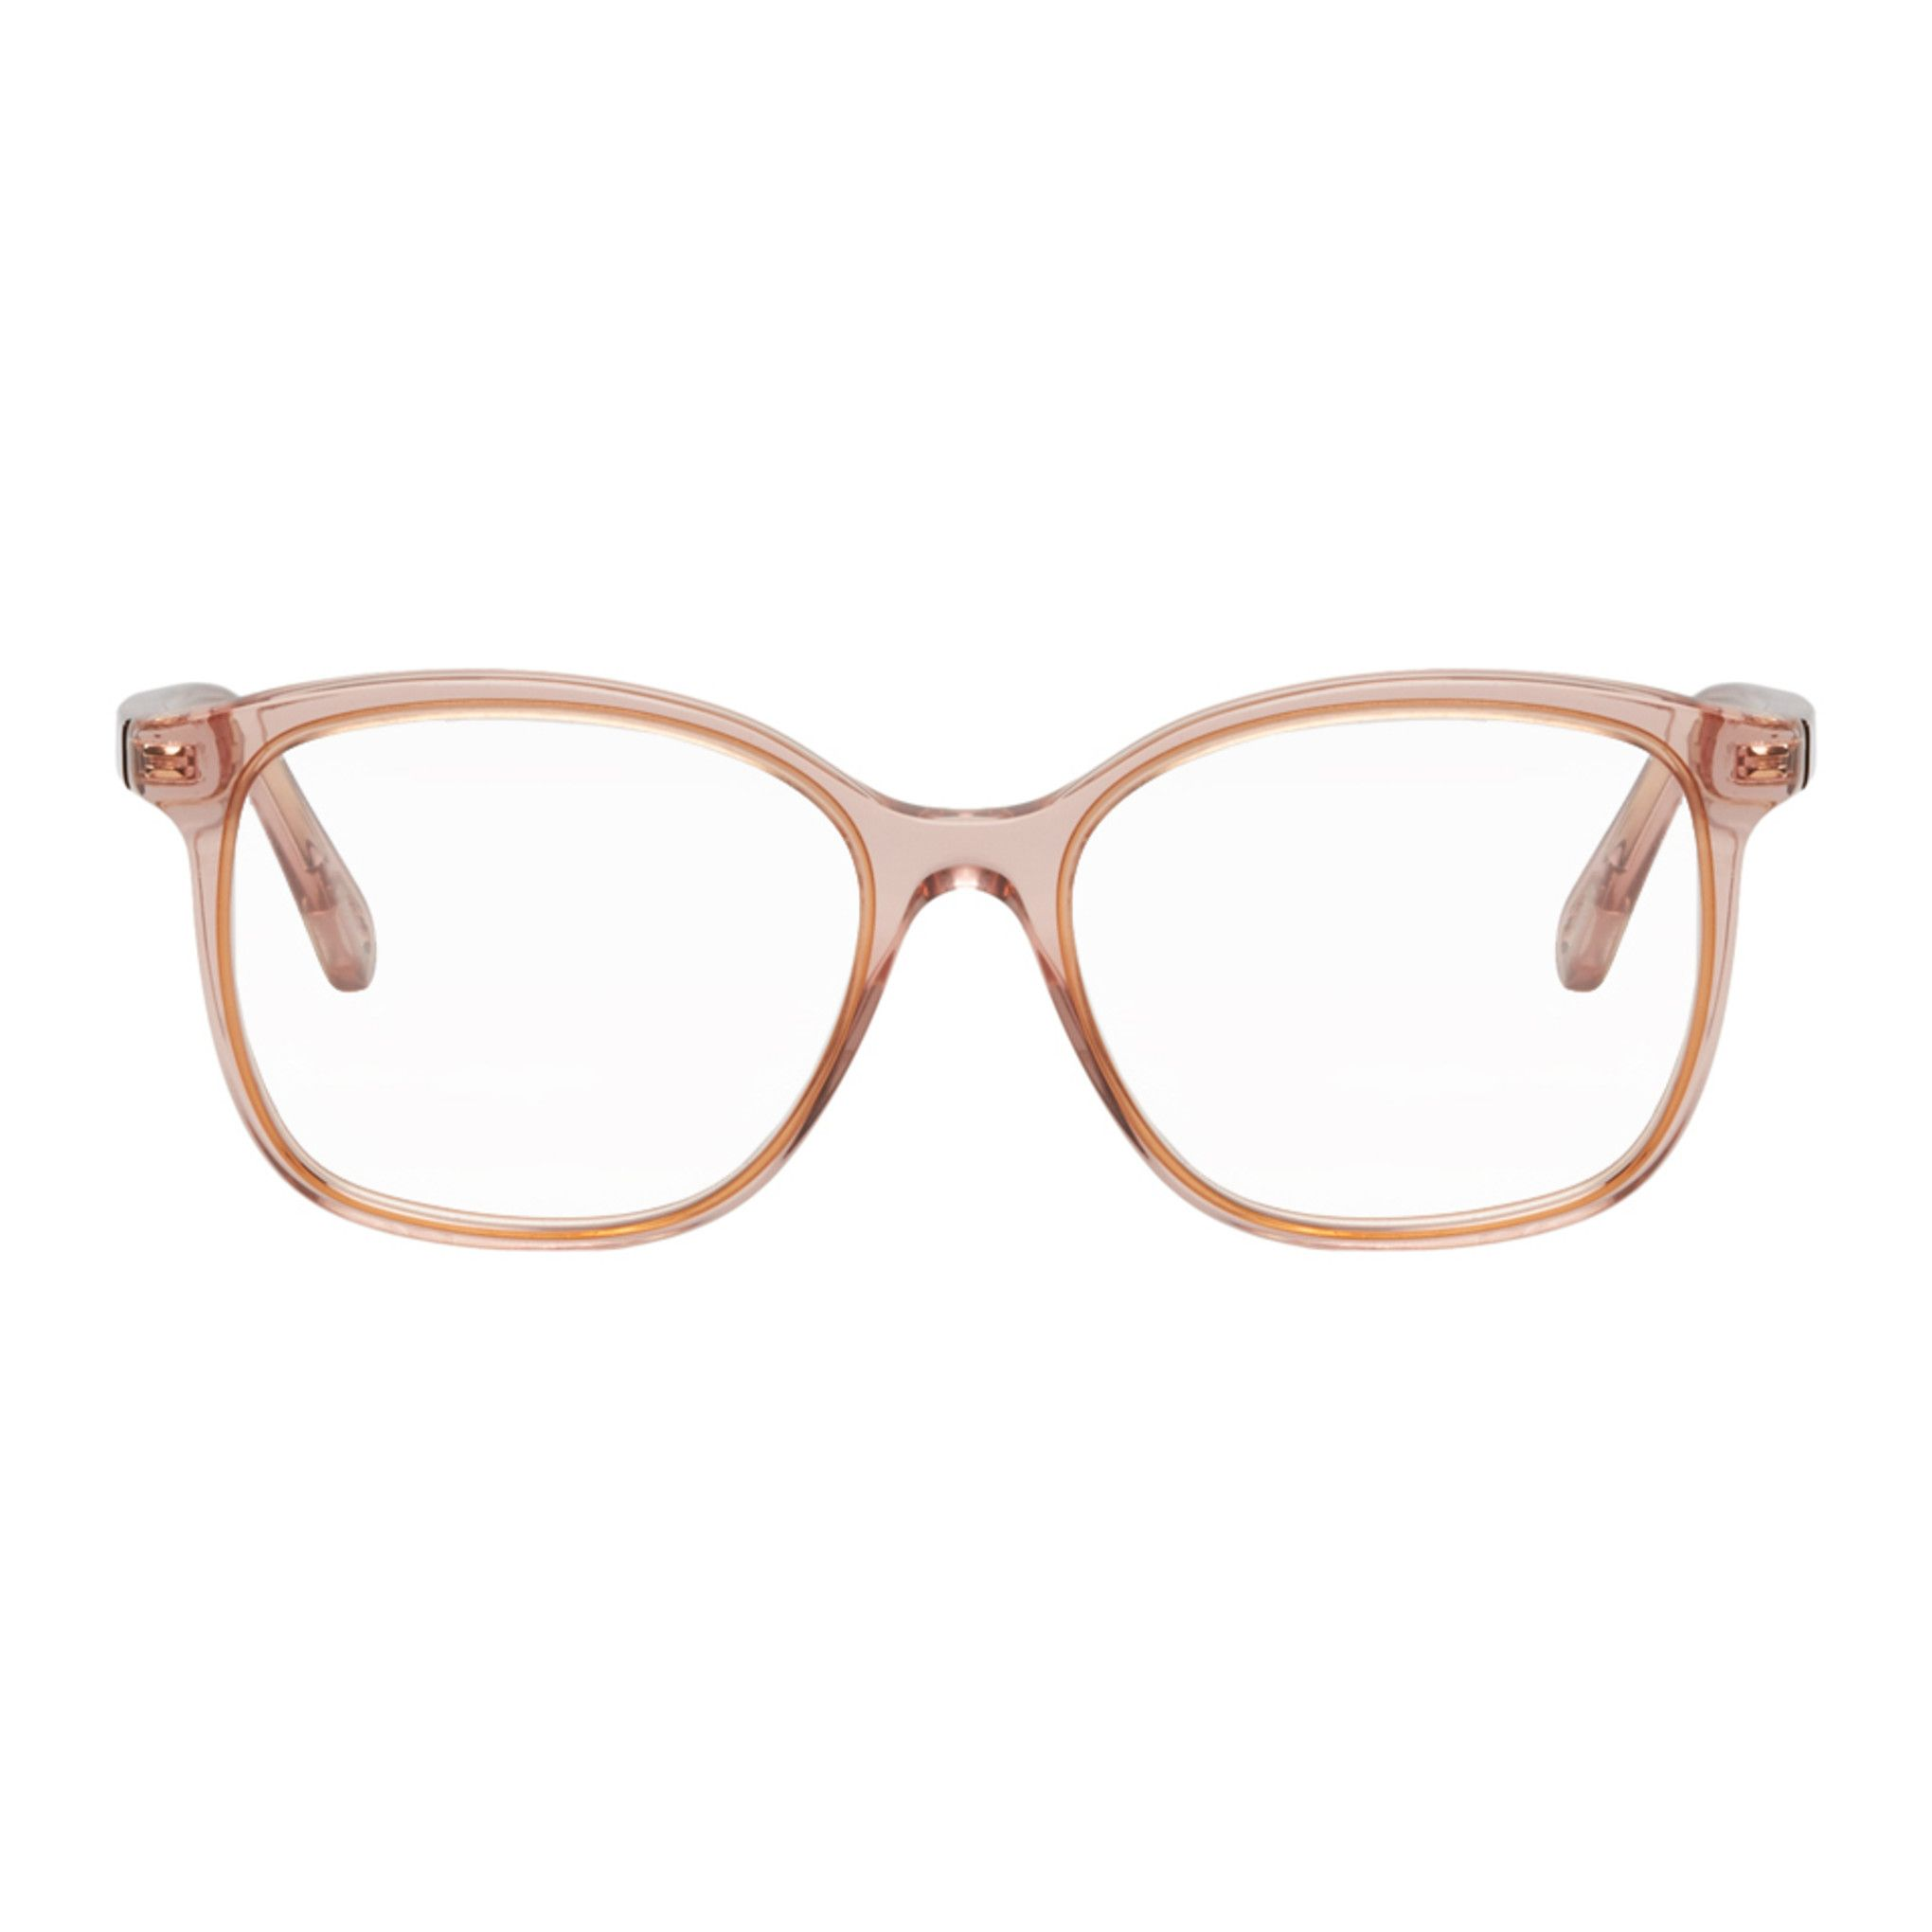 29126775ff5 Chloé - Pink Transparent Acetate Glasses